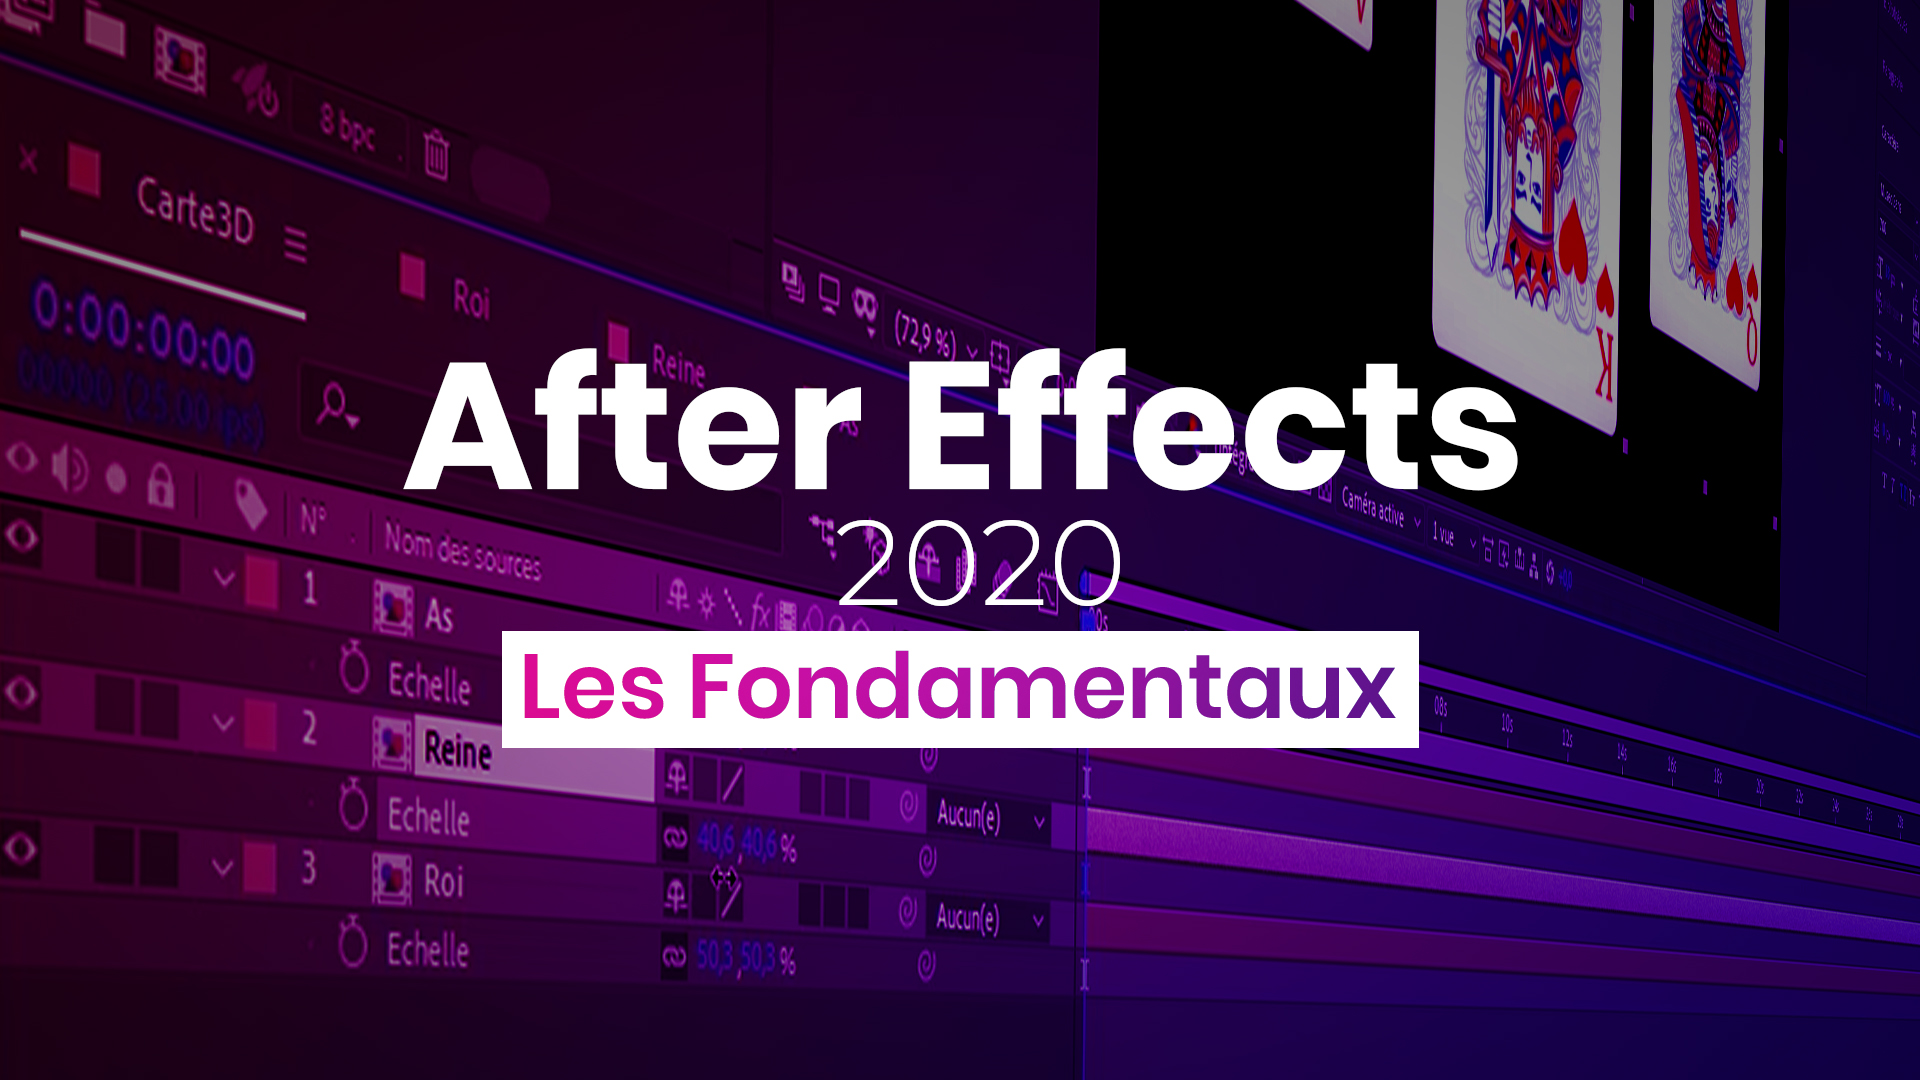 Apprendre Adobe After Effects 2020 - Les fondamentaux